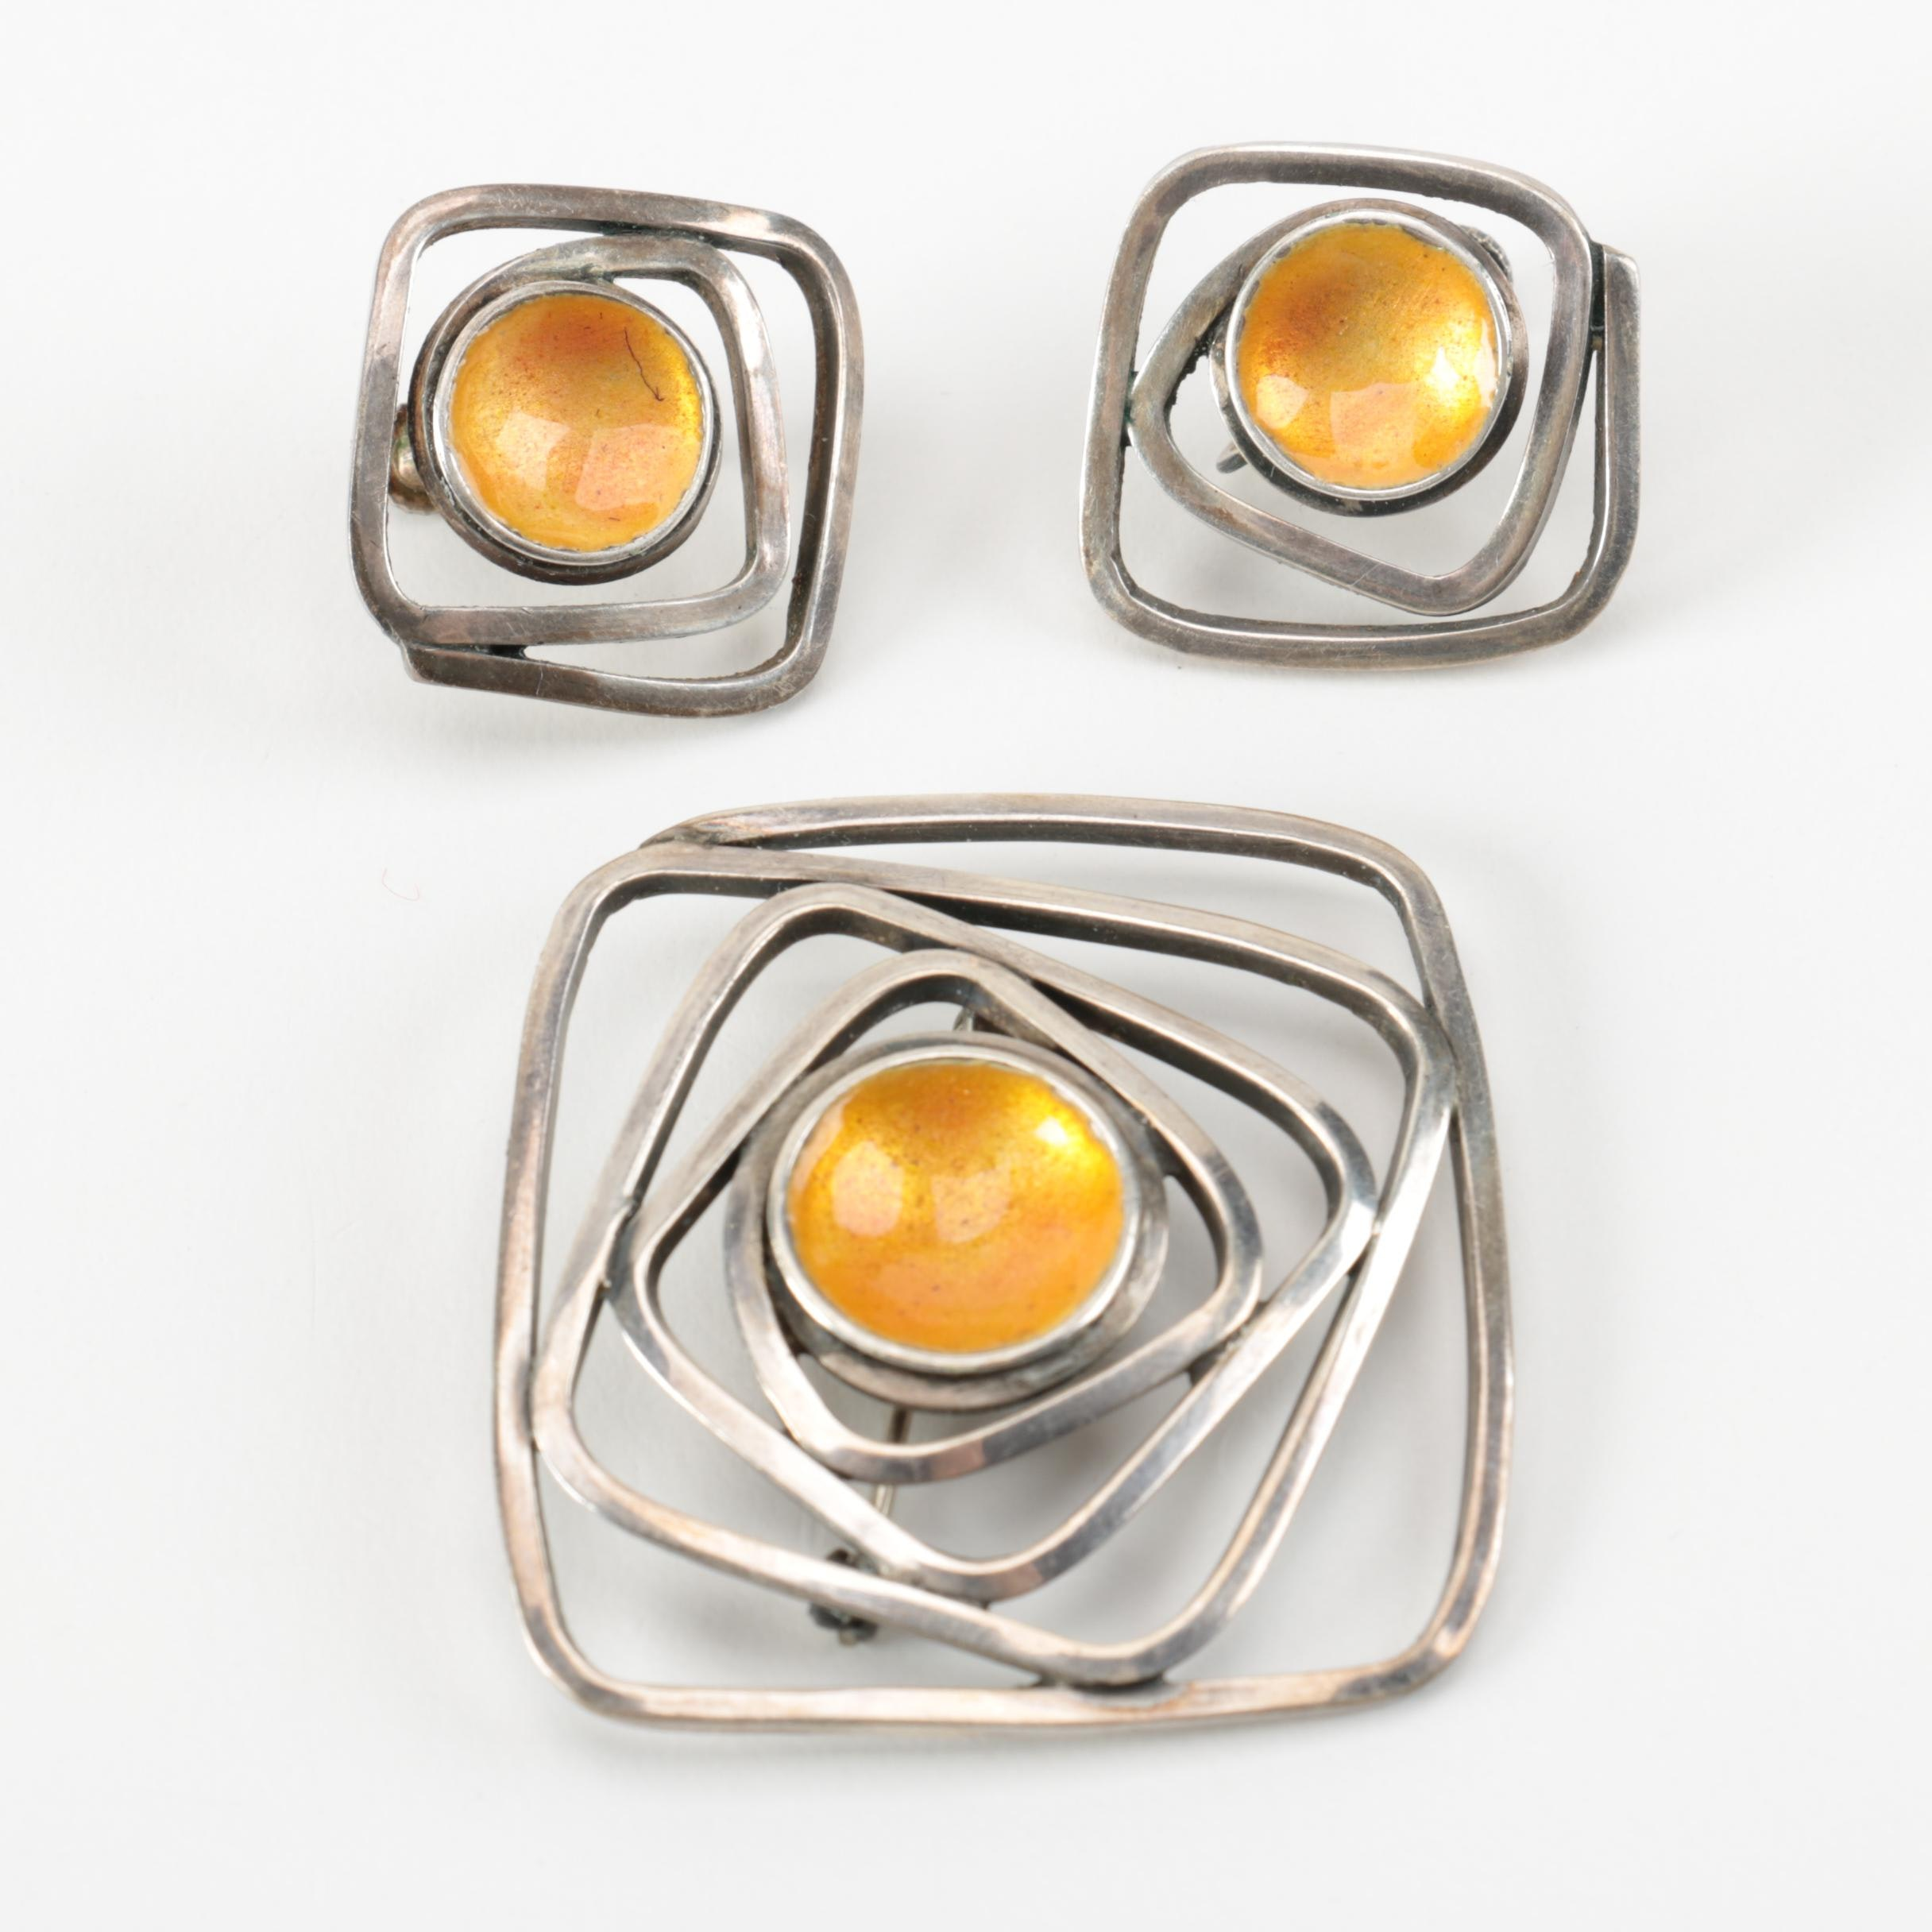 John Bryan Sterling Silver Modernist Style Matching Brooch and Earrings